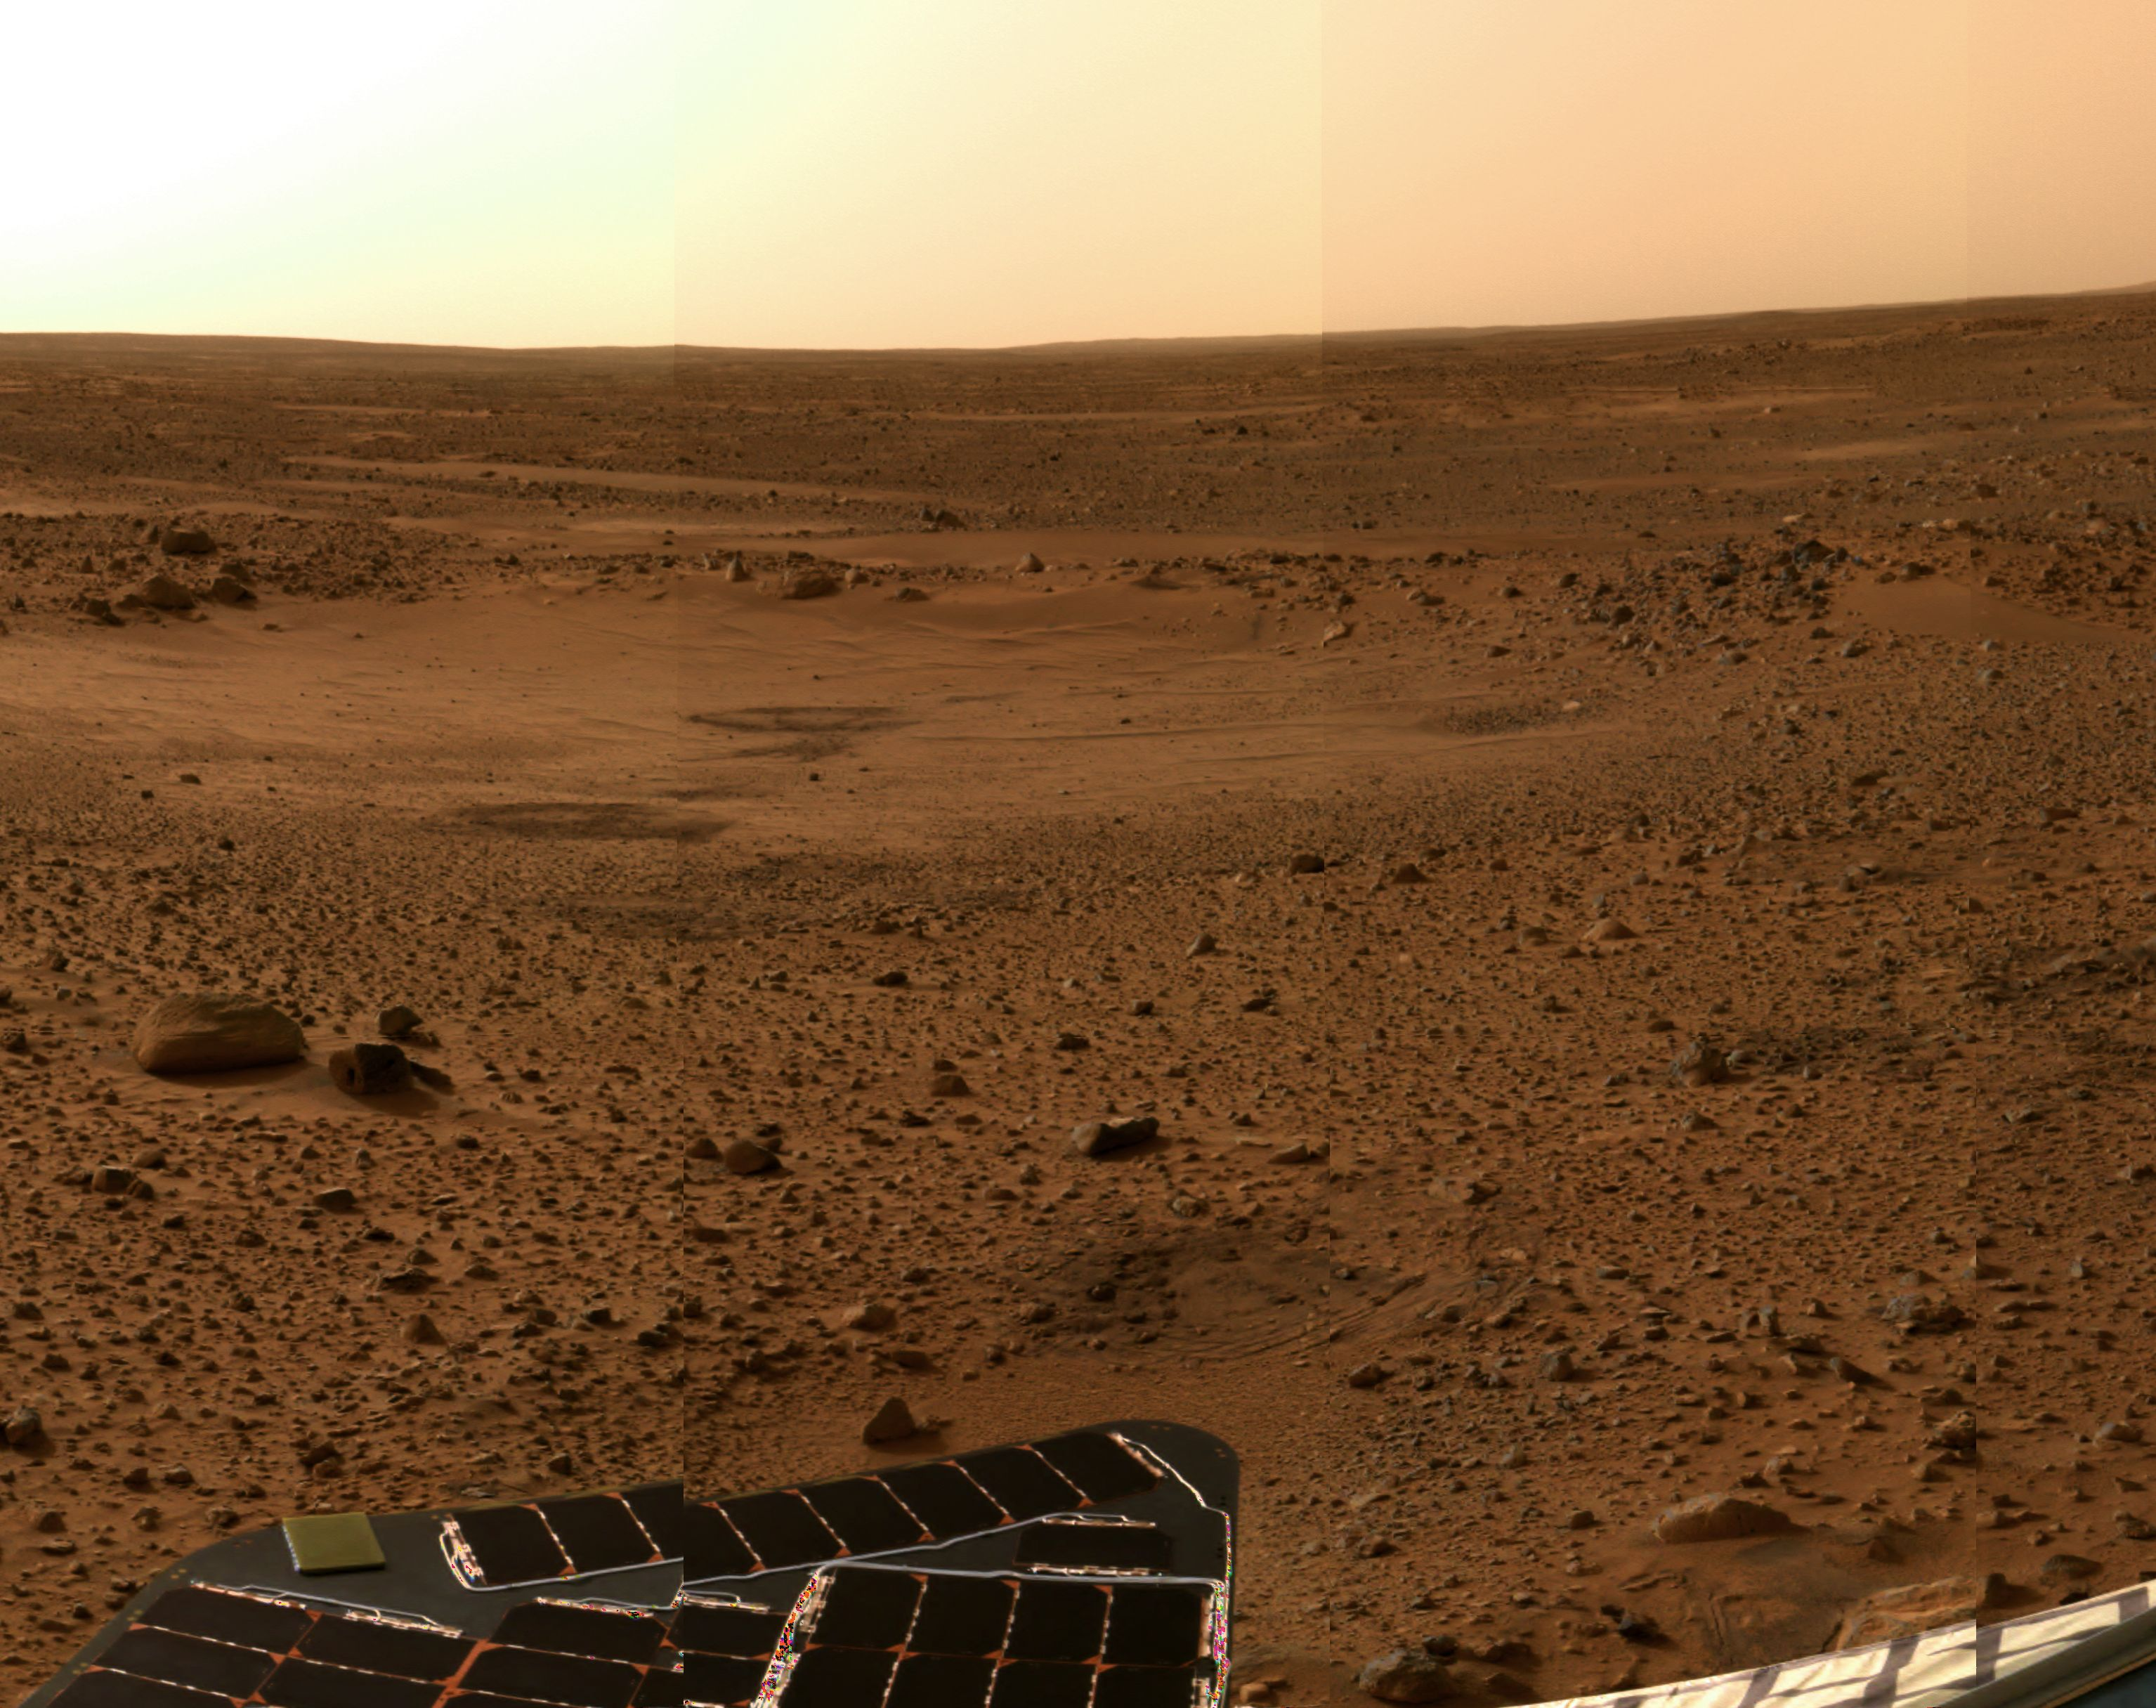 APOD: 2004 January 9 - Sol 5 Postcard from Mars